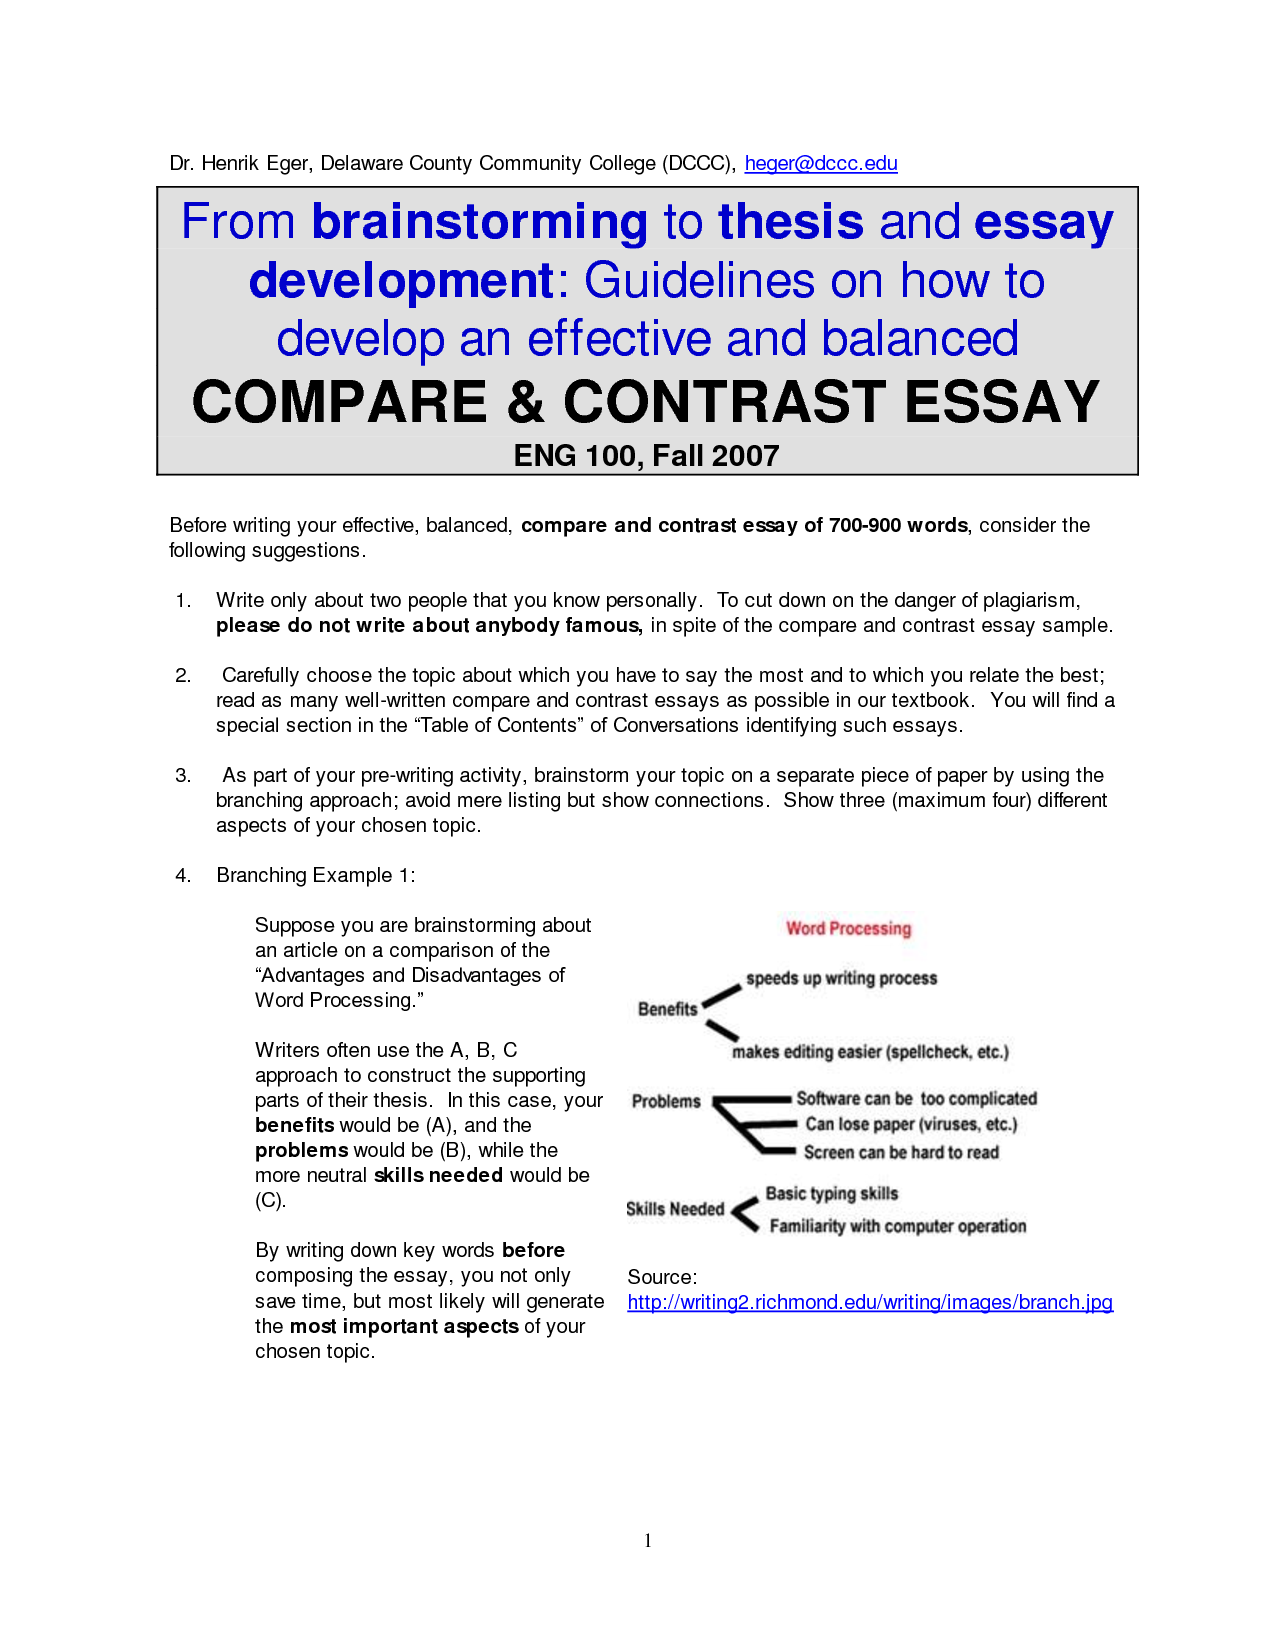 do compare and contrast essays need a thesis Homework task (essay): to compare and contrast how harper lee's novel to kill a mockingbird and tate taylor's film the help represent experiences within well i am writing an essay on why love is a life affirming experience and i cant think of a thesis sentence which is basically the 3 reasons i need.